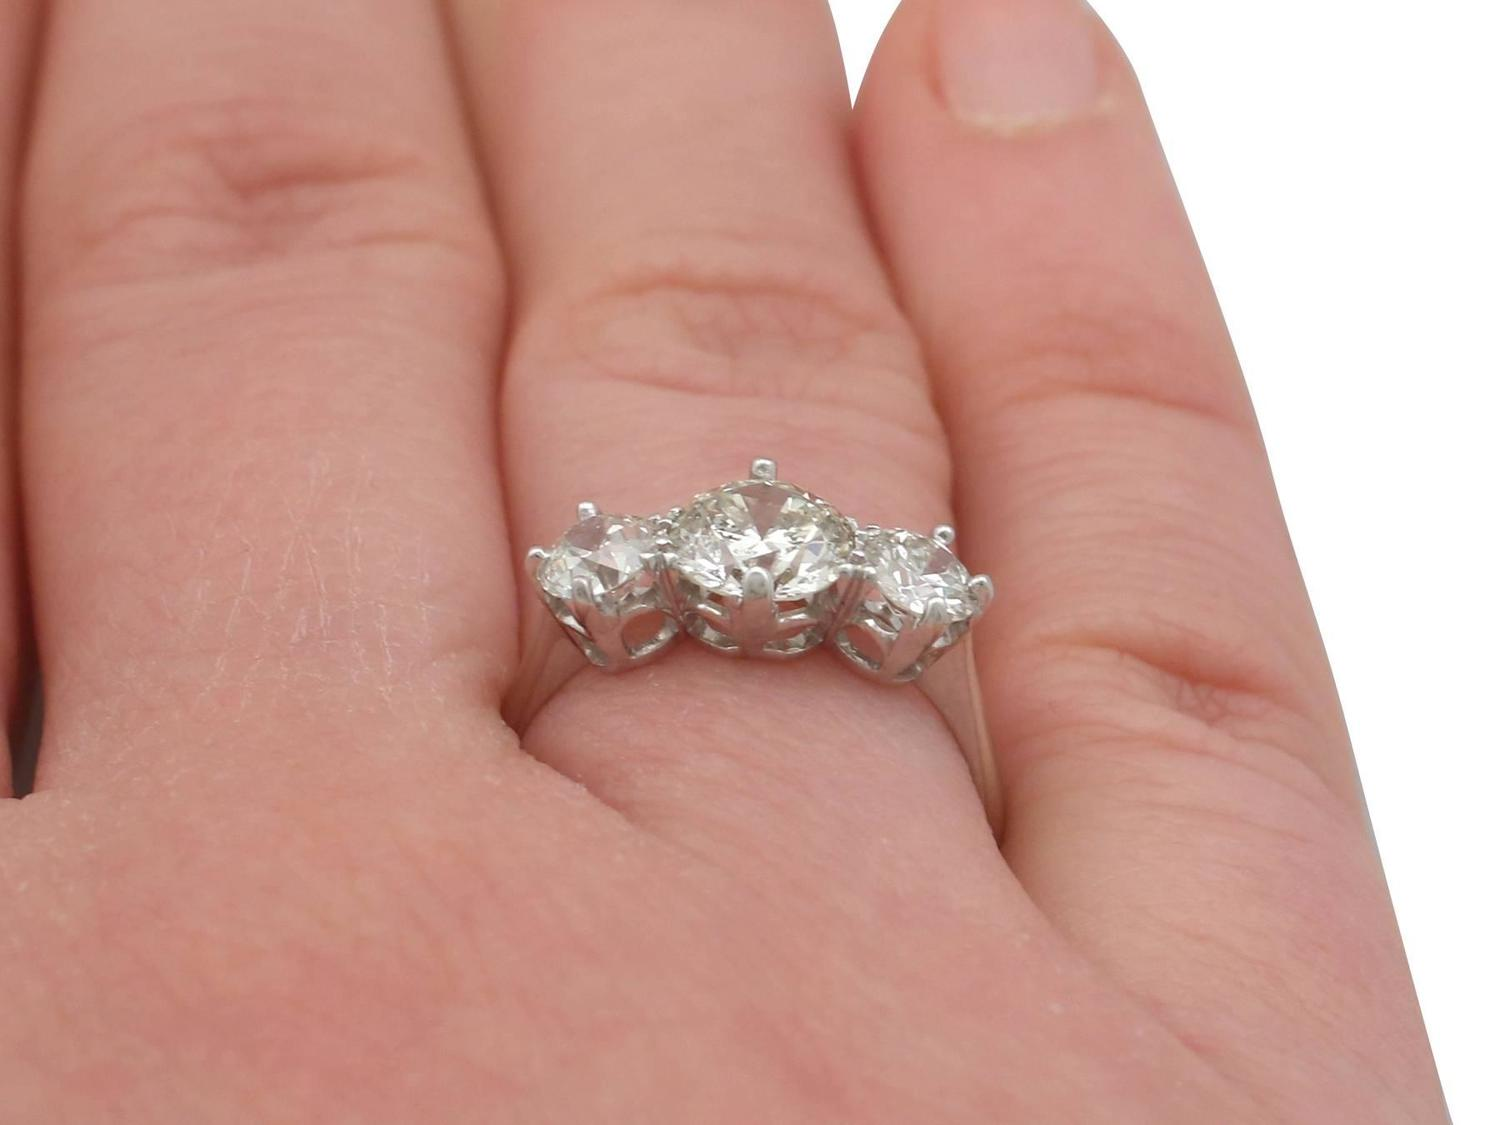 1940s Diamond and Platinum Three-Stone Ring For Sale at 1stdibs